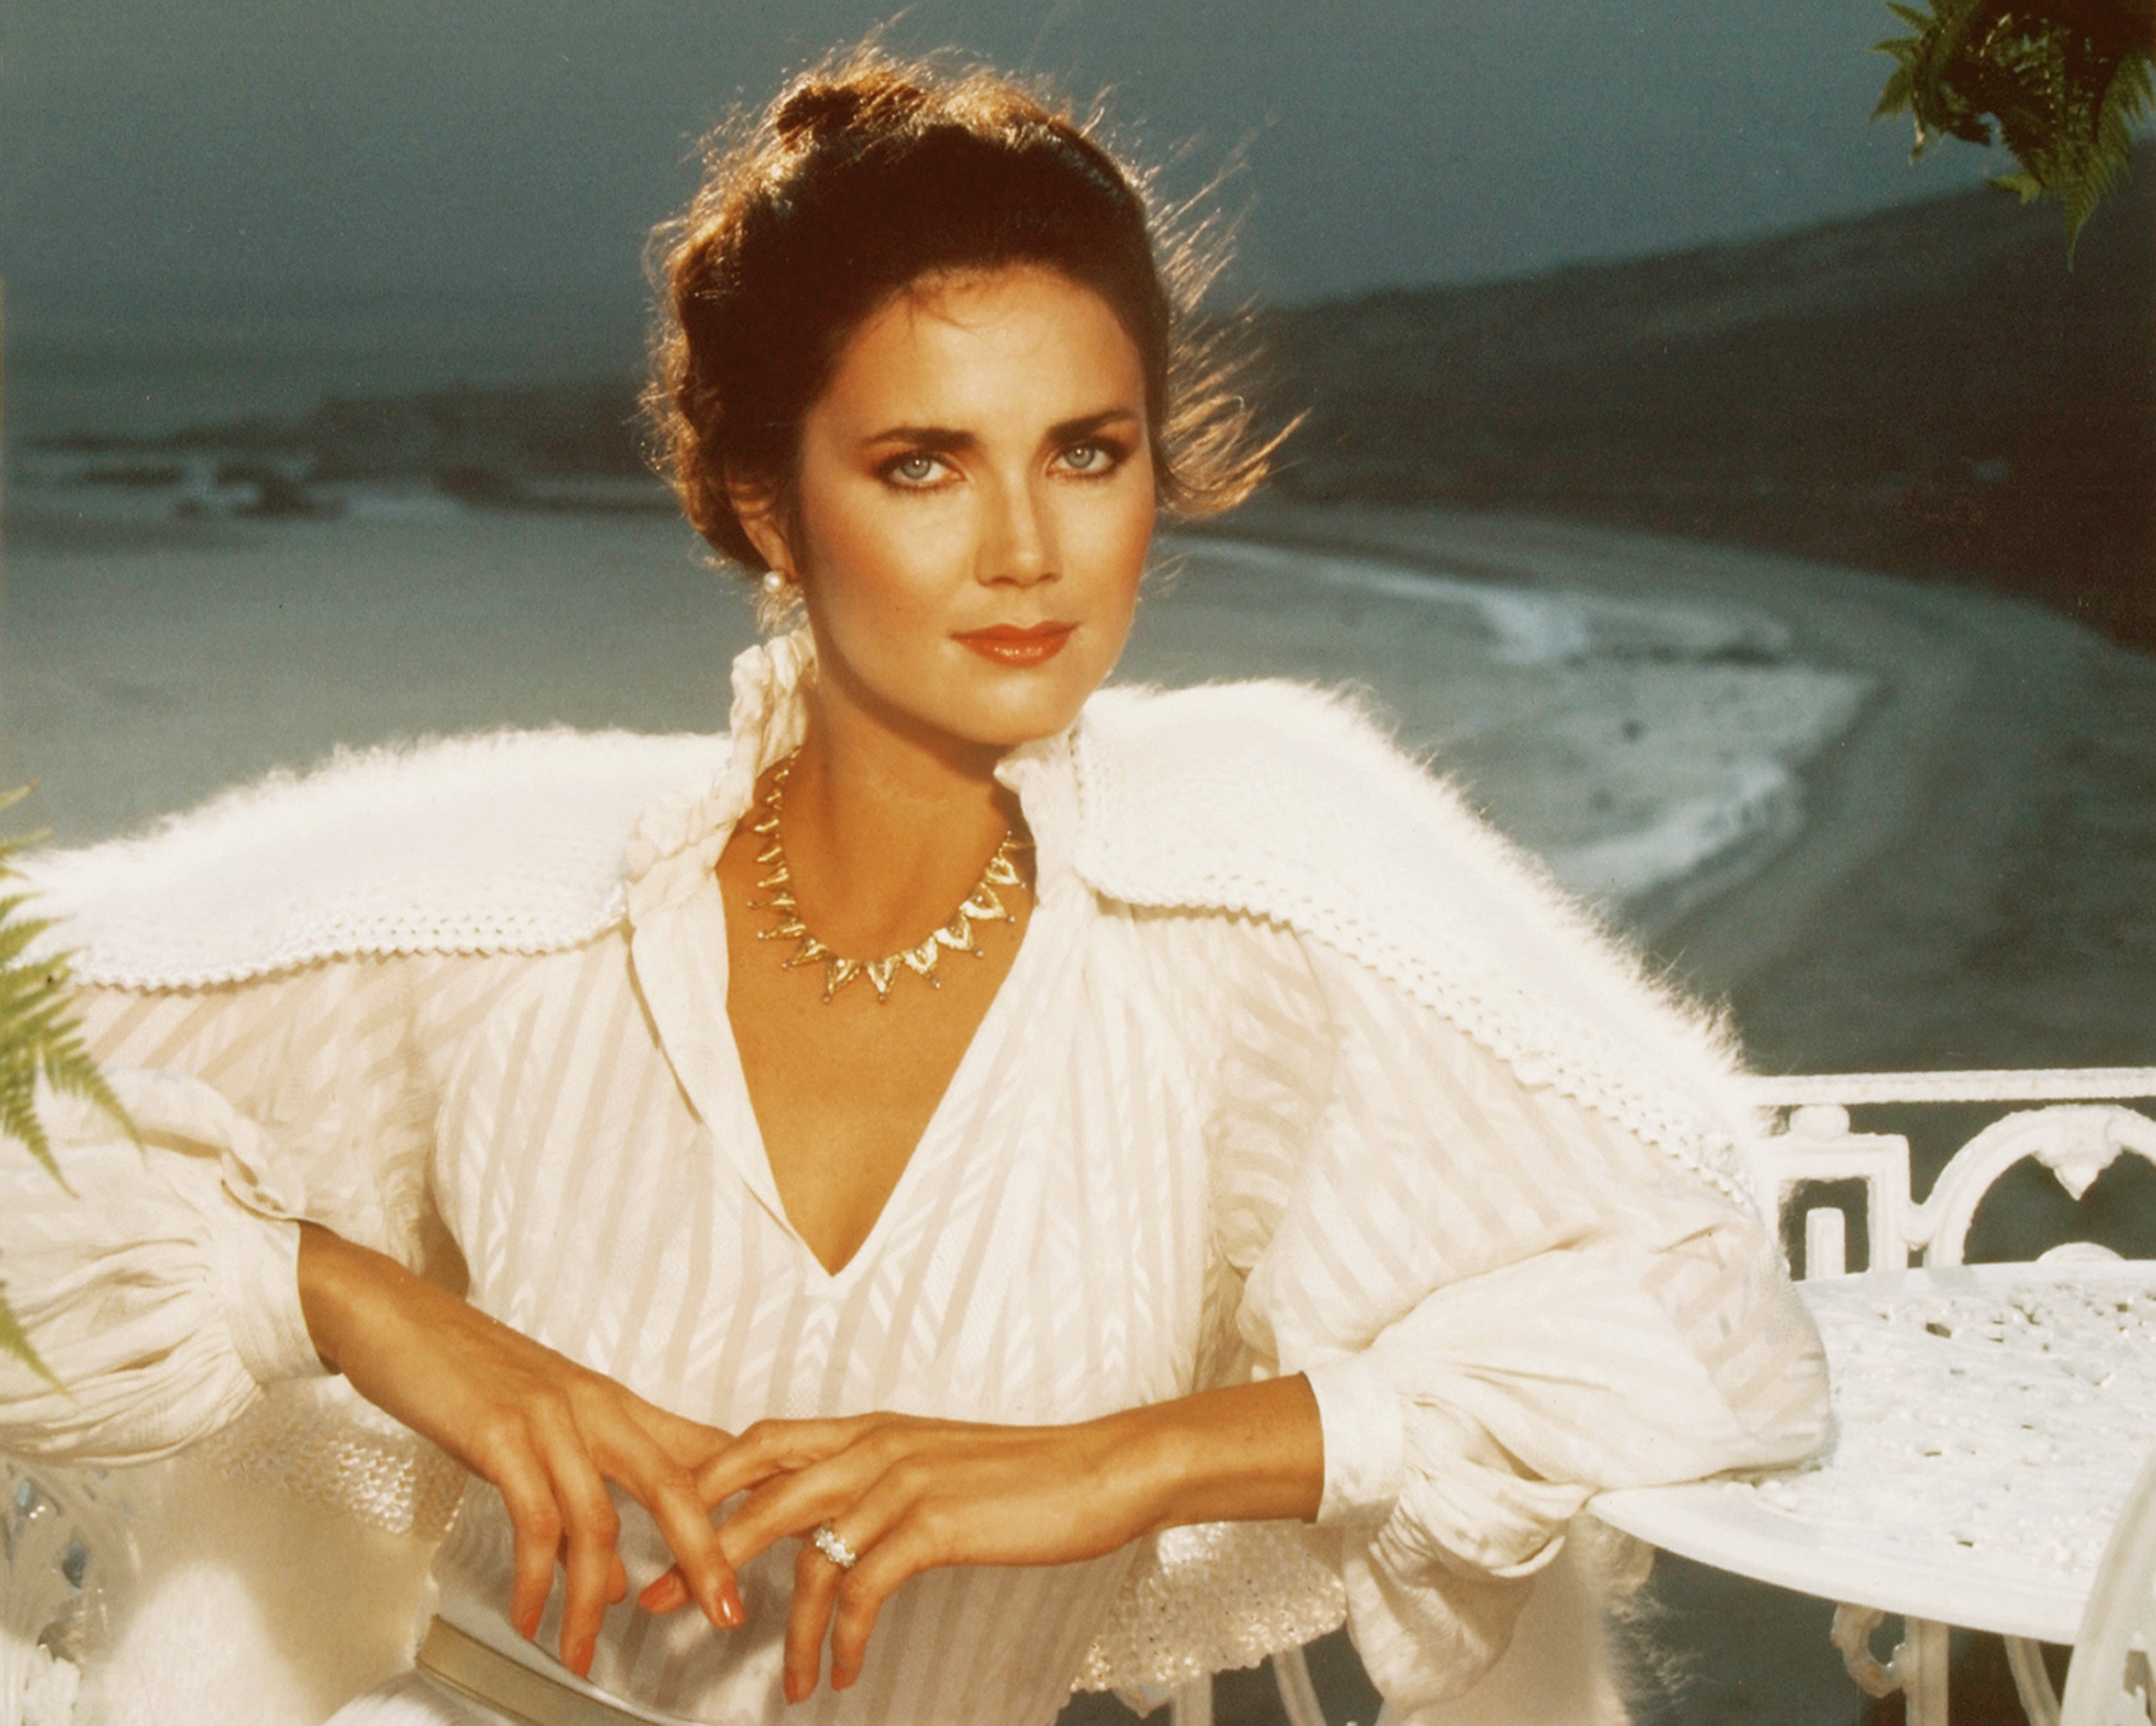 4 Bedroom Houses For Rent In Indianapolis Lynda Carter Gallery Lynda Carter Lynda Carter Photo